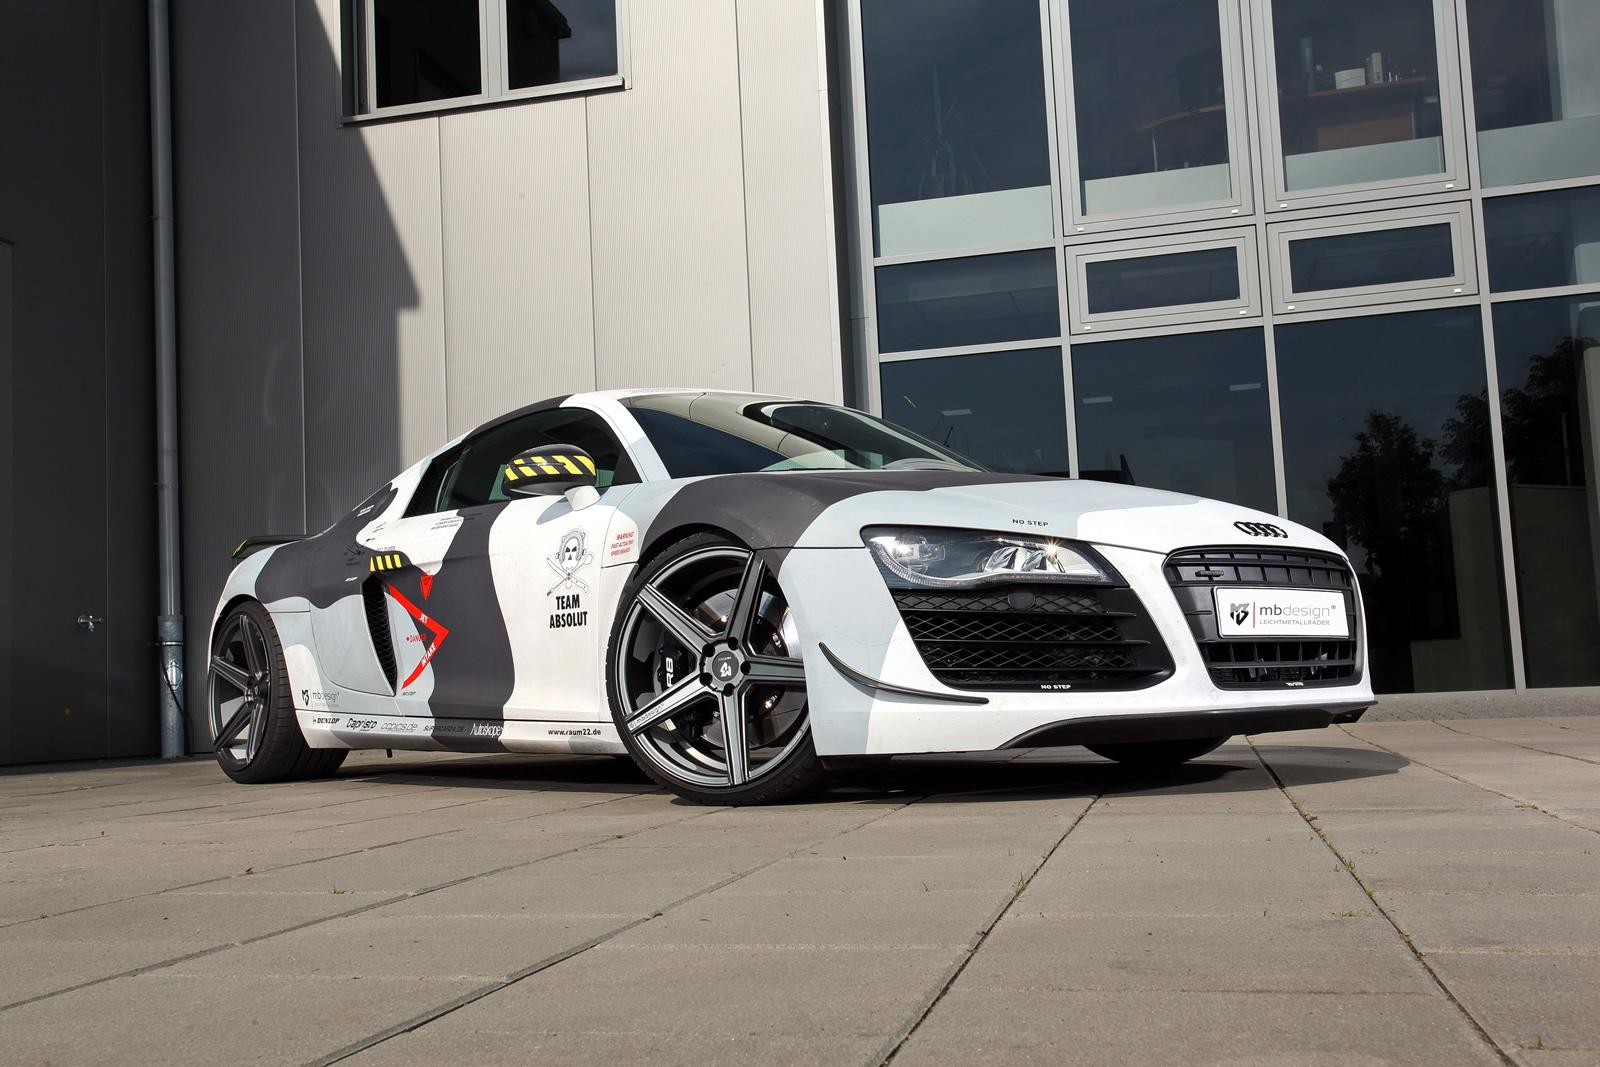 Audi R8 Receives Arctic Camo Wrap And Mods From Mbdesign